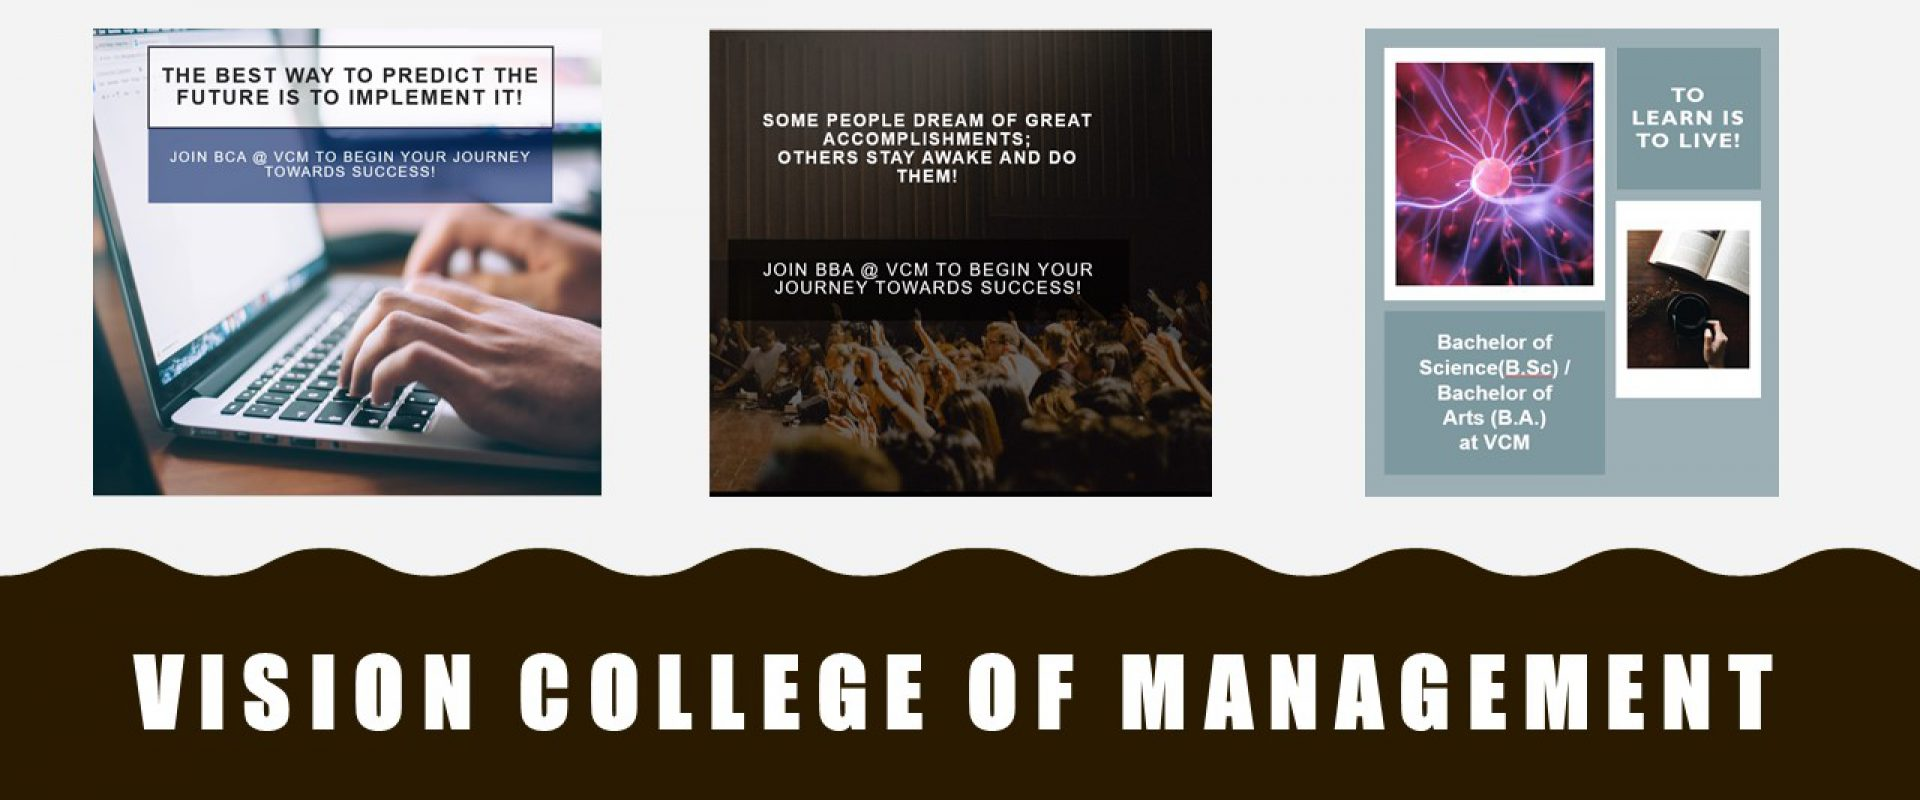 Vision College of Mangmt.